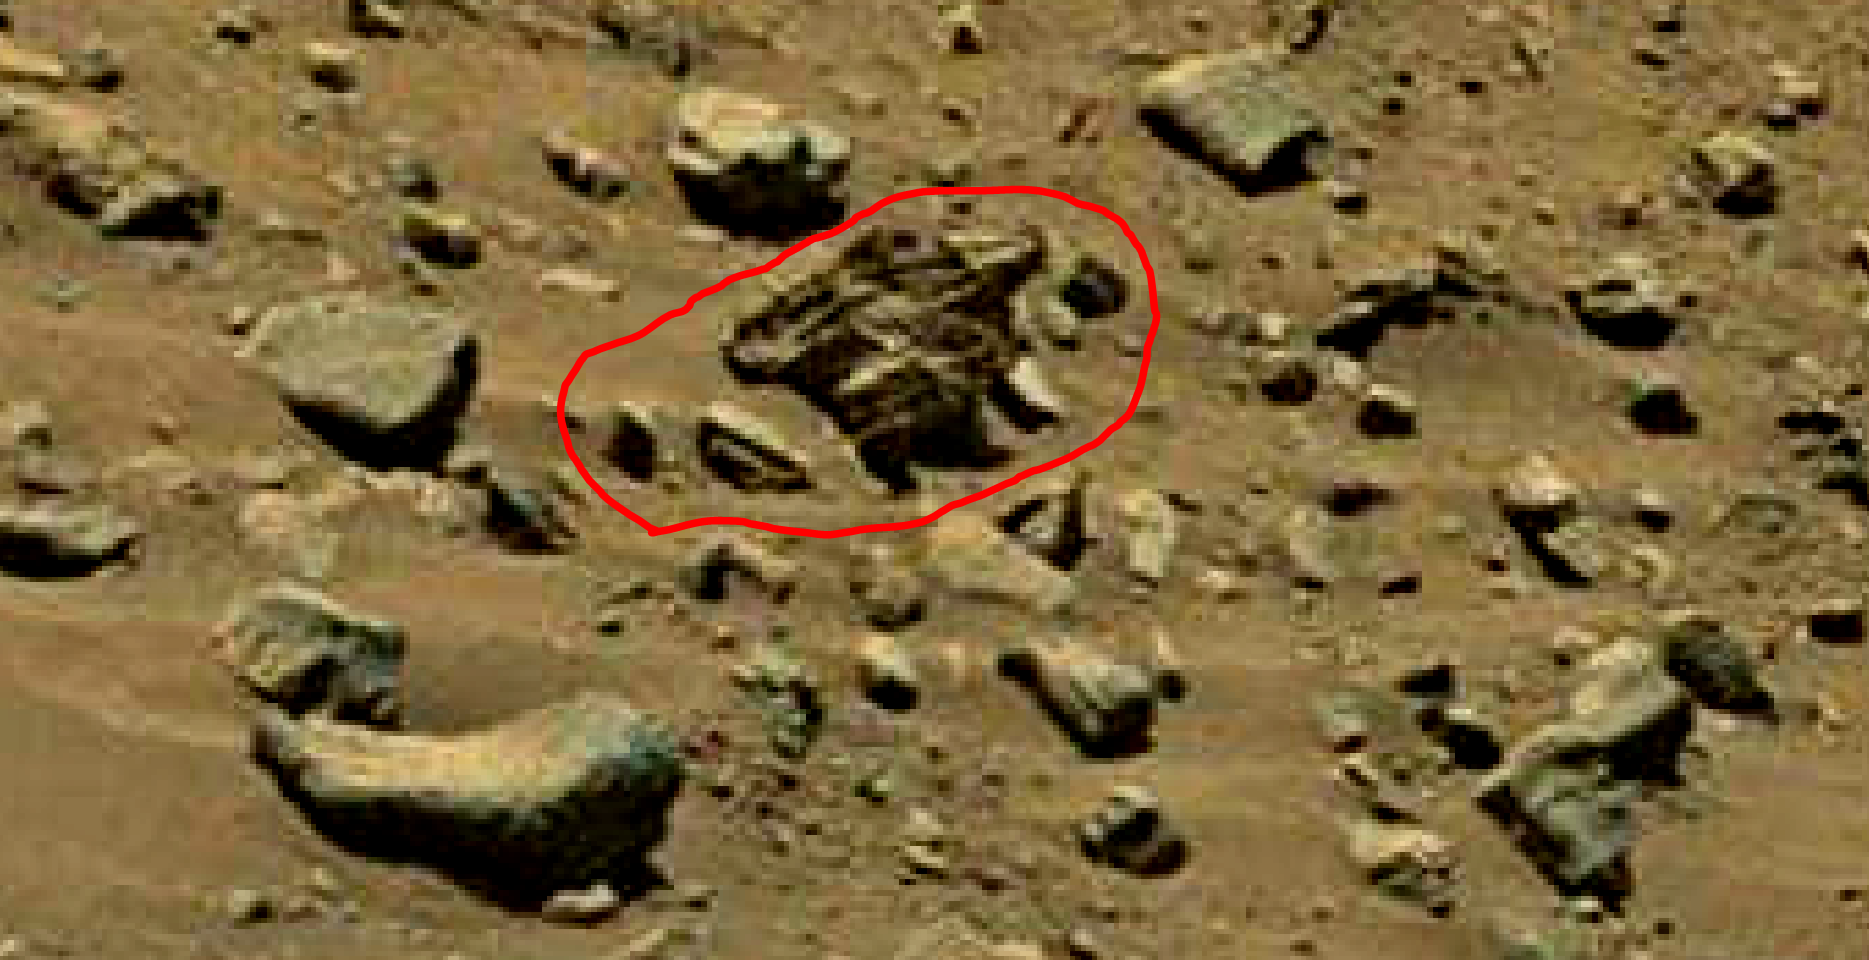 mars sol 1399 anomaly artifacts 9a was life on mars